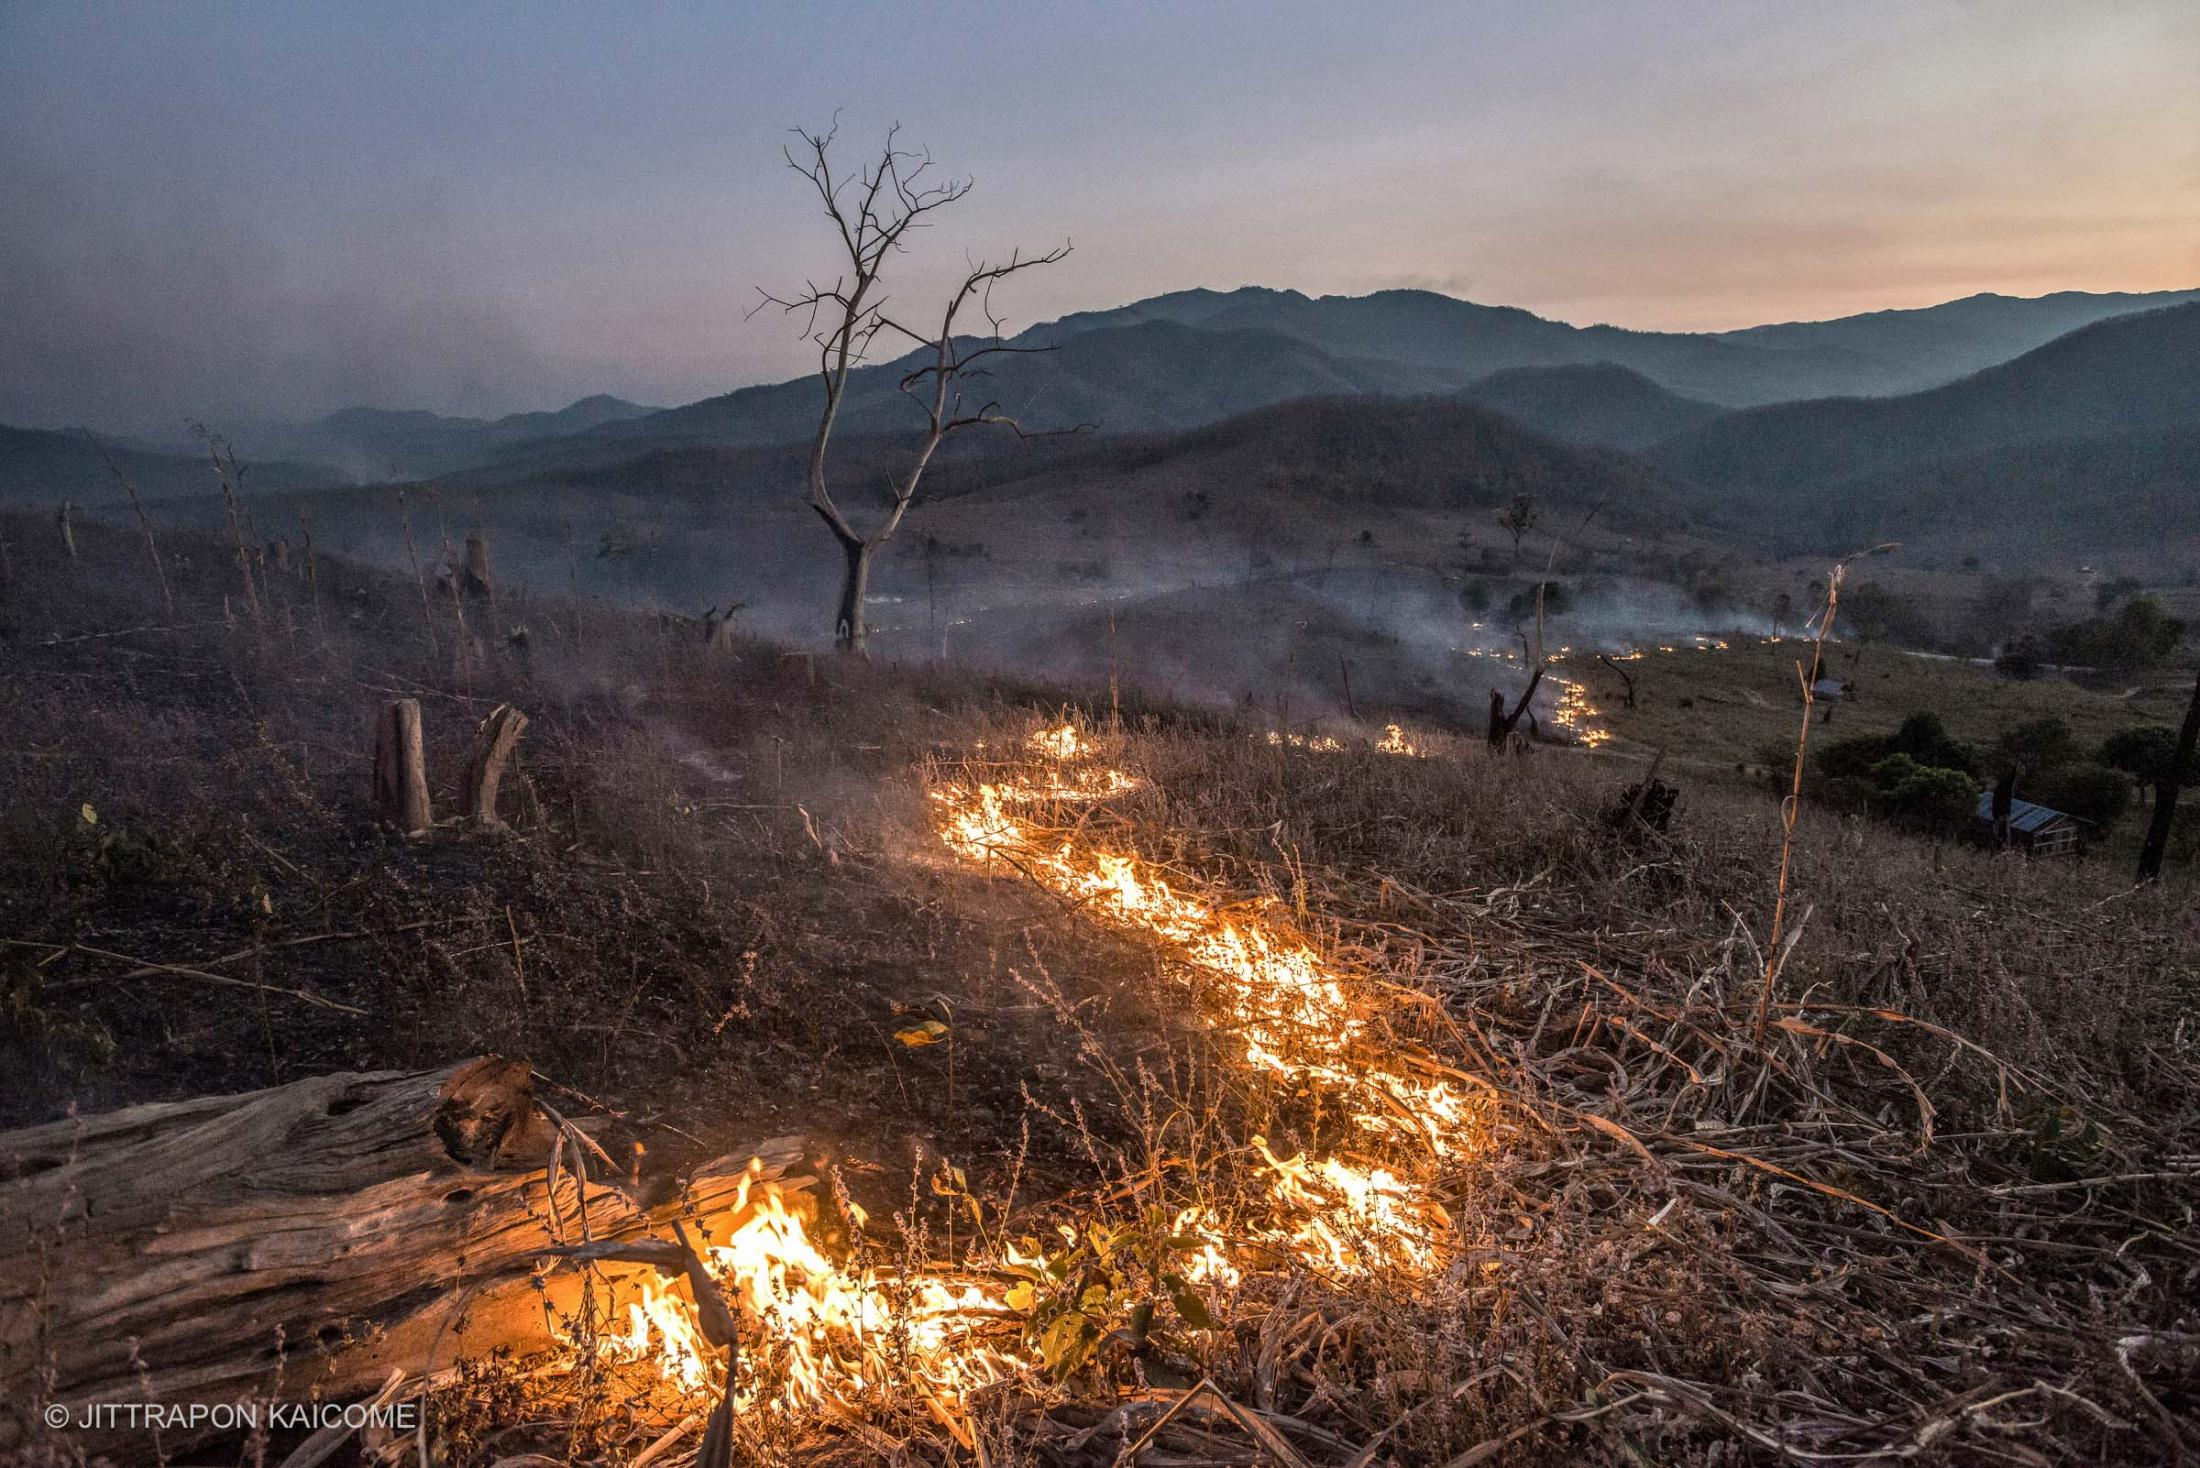 "Slow-burning wildfire scorches thousands of acres in Mae Chaem District, Chiang Mai, Thailand. The areas burned by wildfires each year appeared to start after crop harvesting. Stubble burning is a major reason for heavy smog and air pollution. Forests are considered to be vital for human life due to their provisions of a diverse range of resources. They are able to store carbon and produce oxygen which is necessary to the existence of life on the planet. The extensive destruction of forests turns the land into barren areas that can be described as ""bald mountains"". The deforestation is an extraordinary contributor to climate change. Chiang Mai, Thailand."